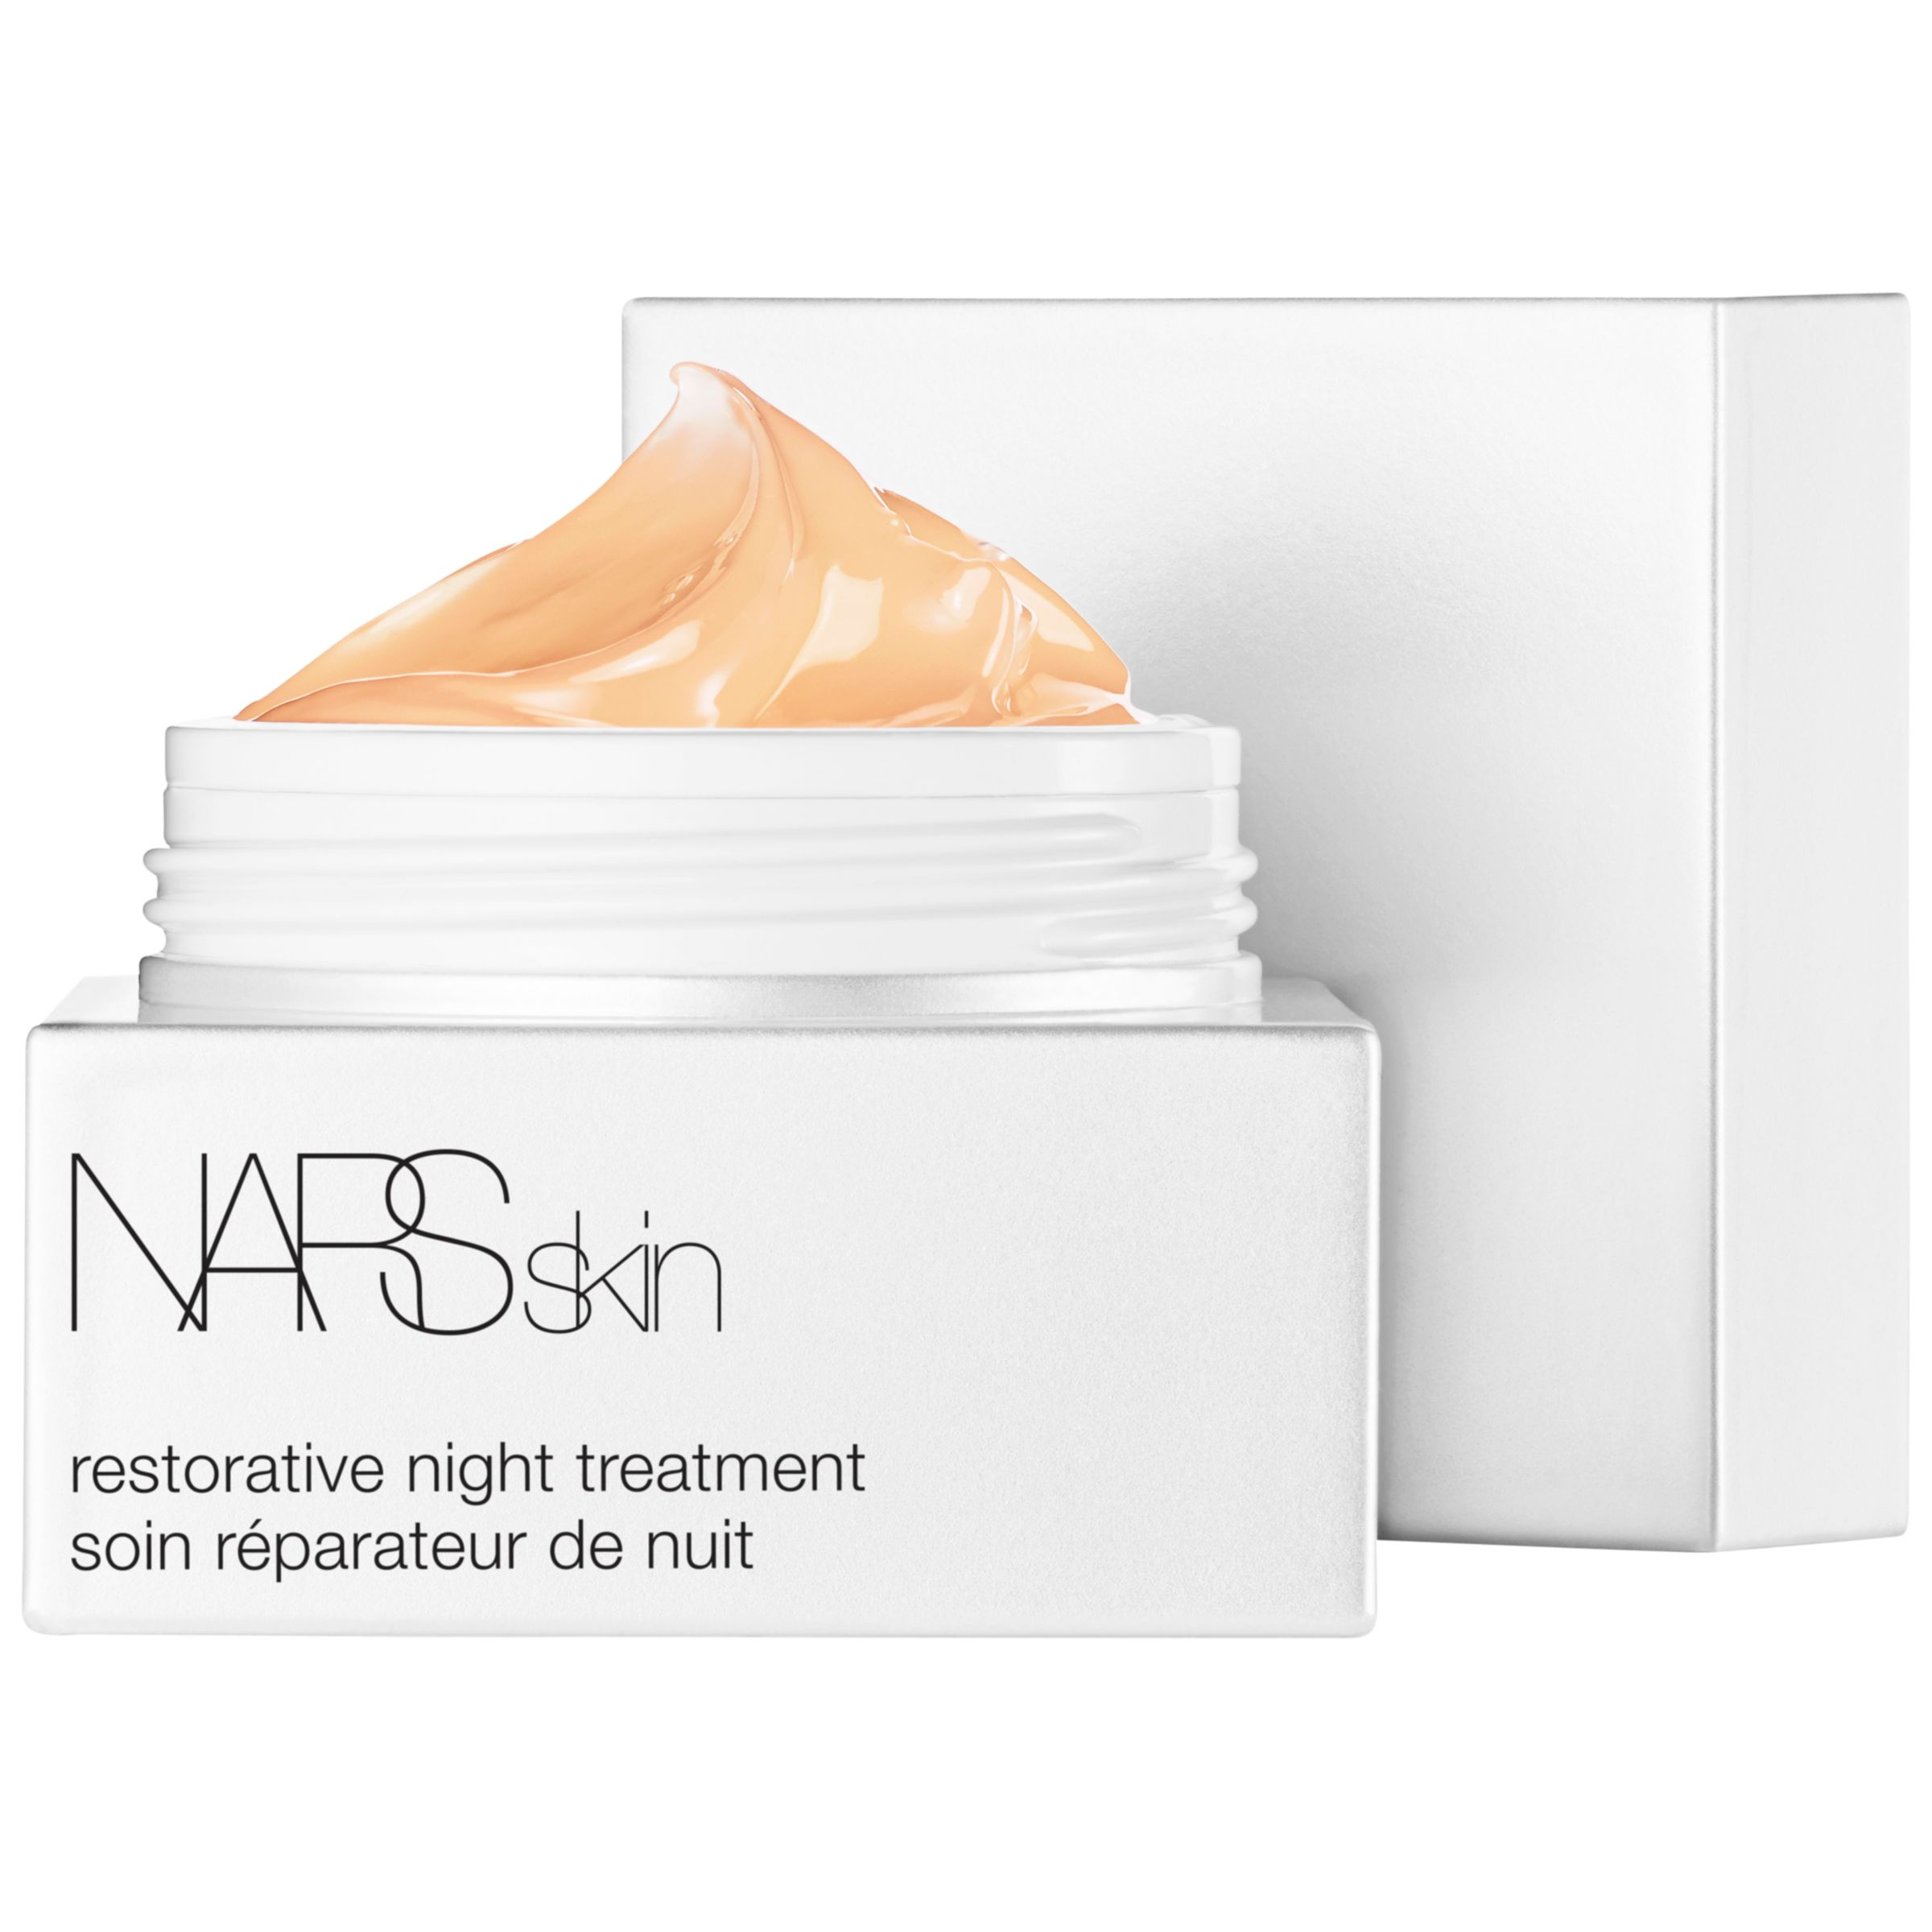 NARS NARSskin Restorative Night Treatment, 30ml